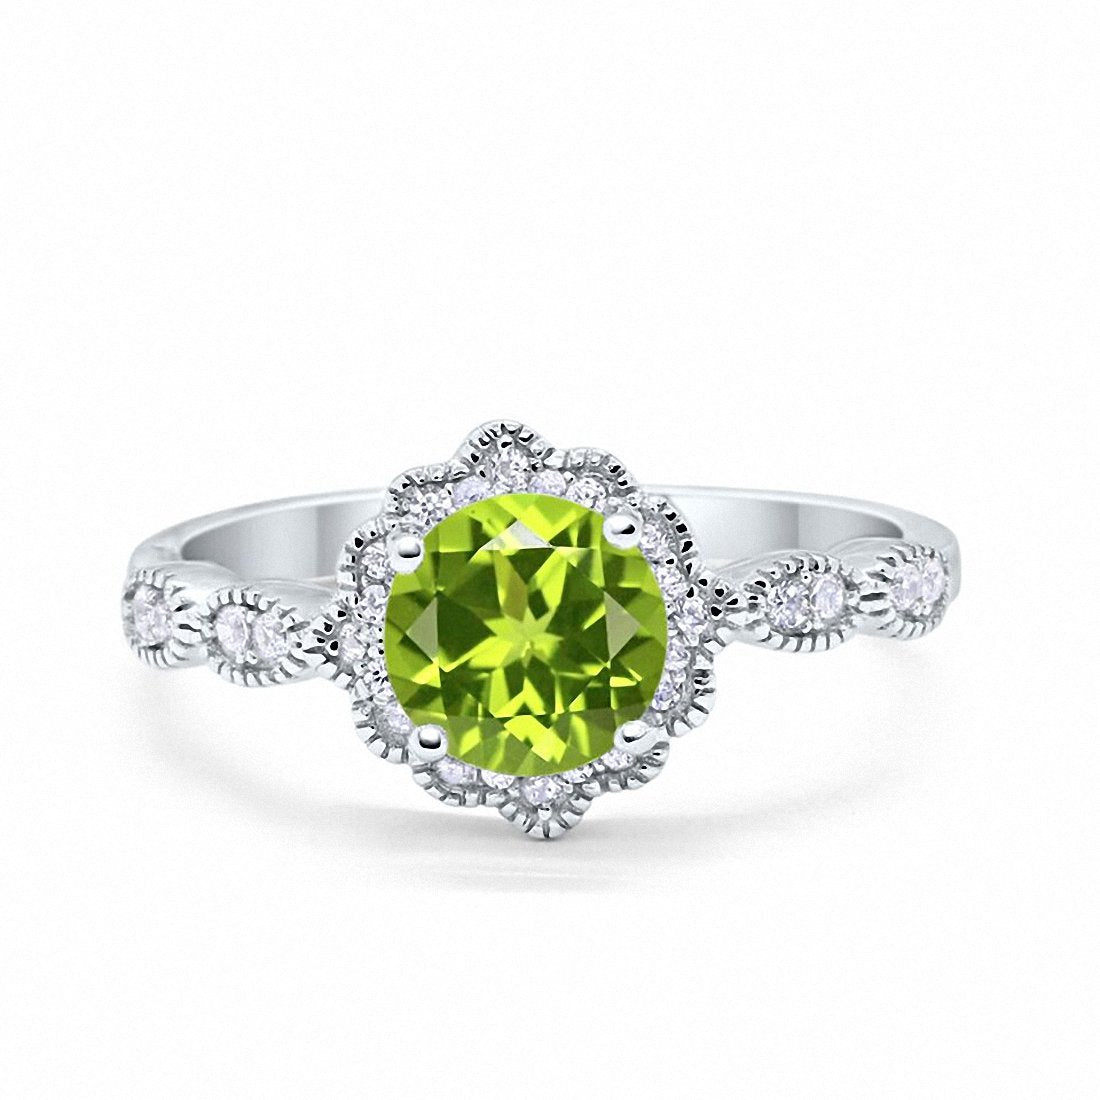 Floral Art Wedding Ring Simulated Peridot Cubic Zirconia 925 Sterling Silver